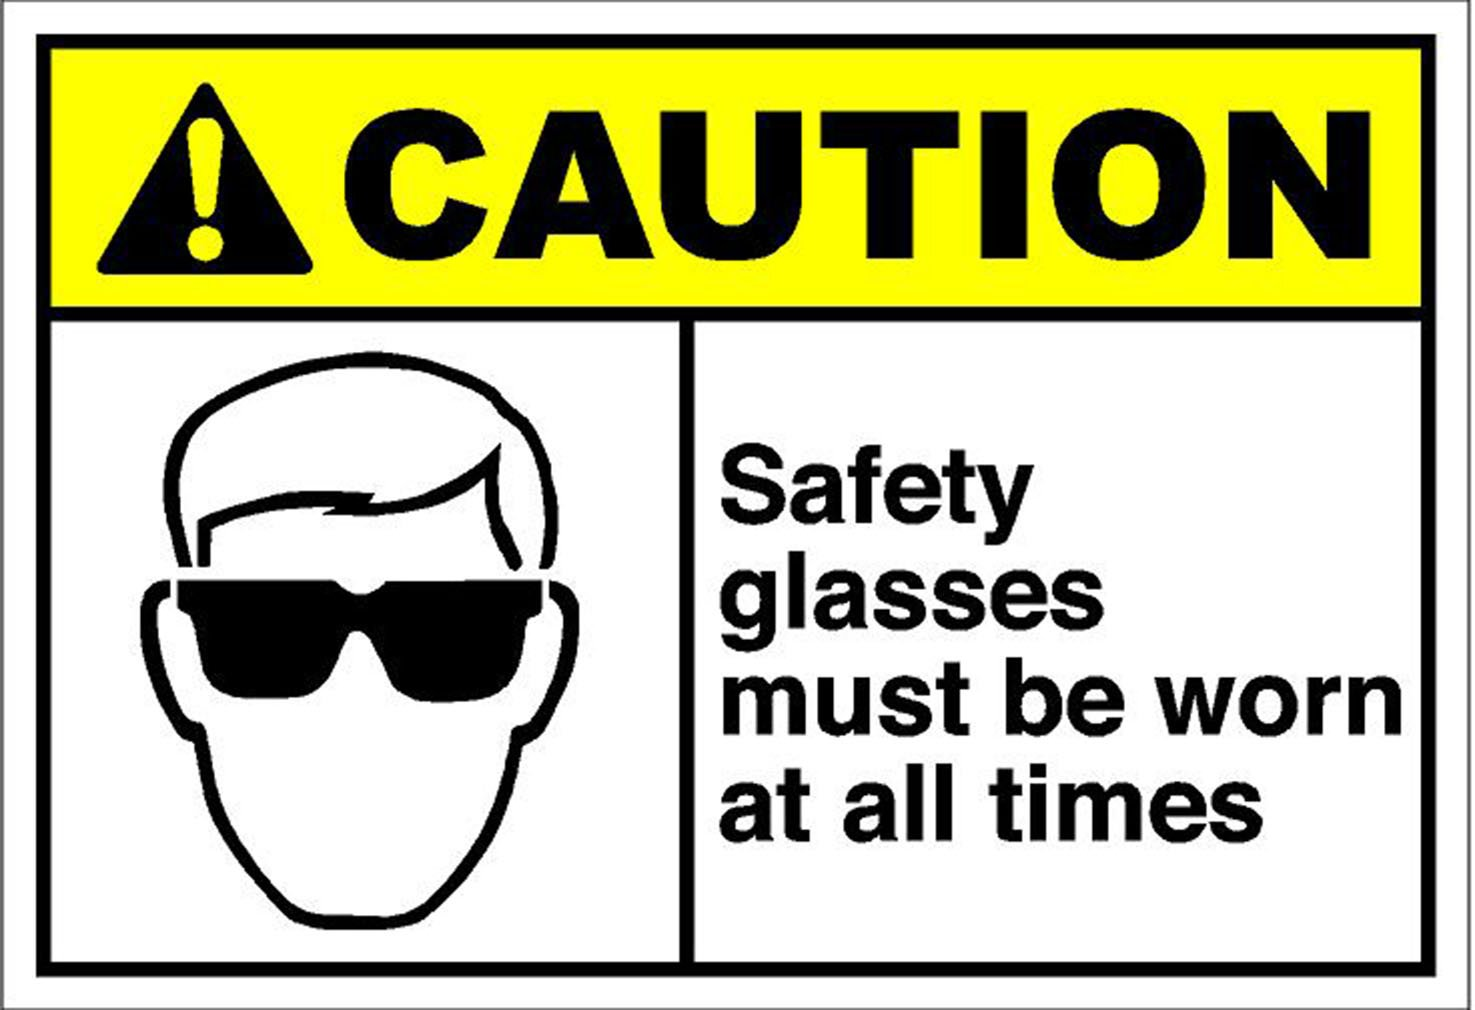 Safety Glasses Must Be Worn At All Times Caution OSHA / ANSI Aluminum METAL Sign 10 in x 7 in